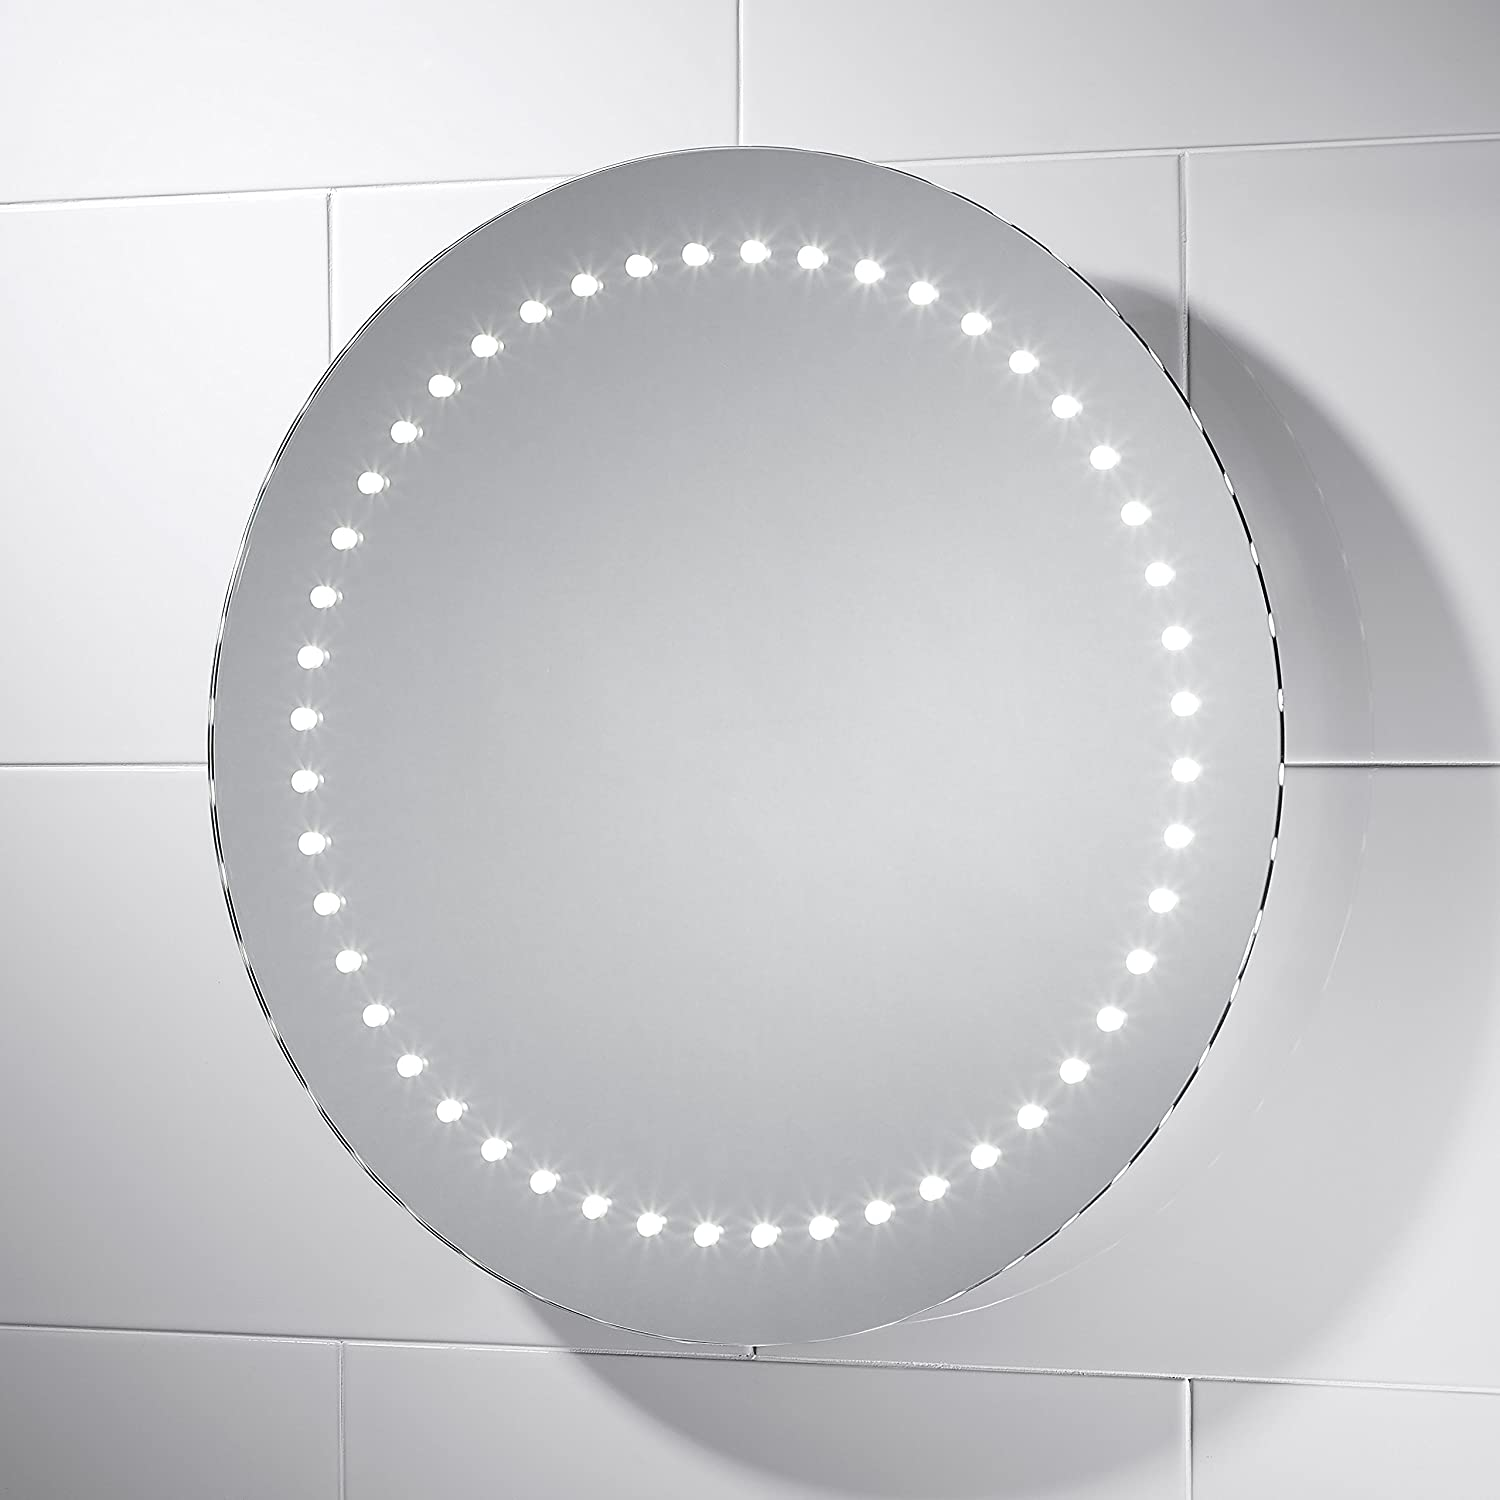 Estrella LED Illuminated Bathroom Mirror With Lights 500mm Diameter Sensor Switch And Full Size Demister Pad Amazoncouk Kitchen Home